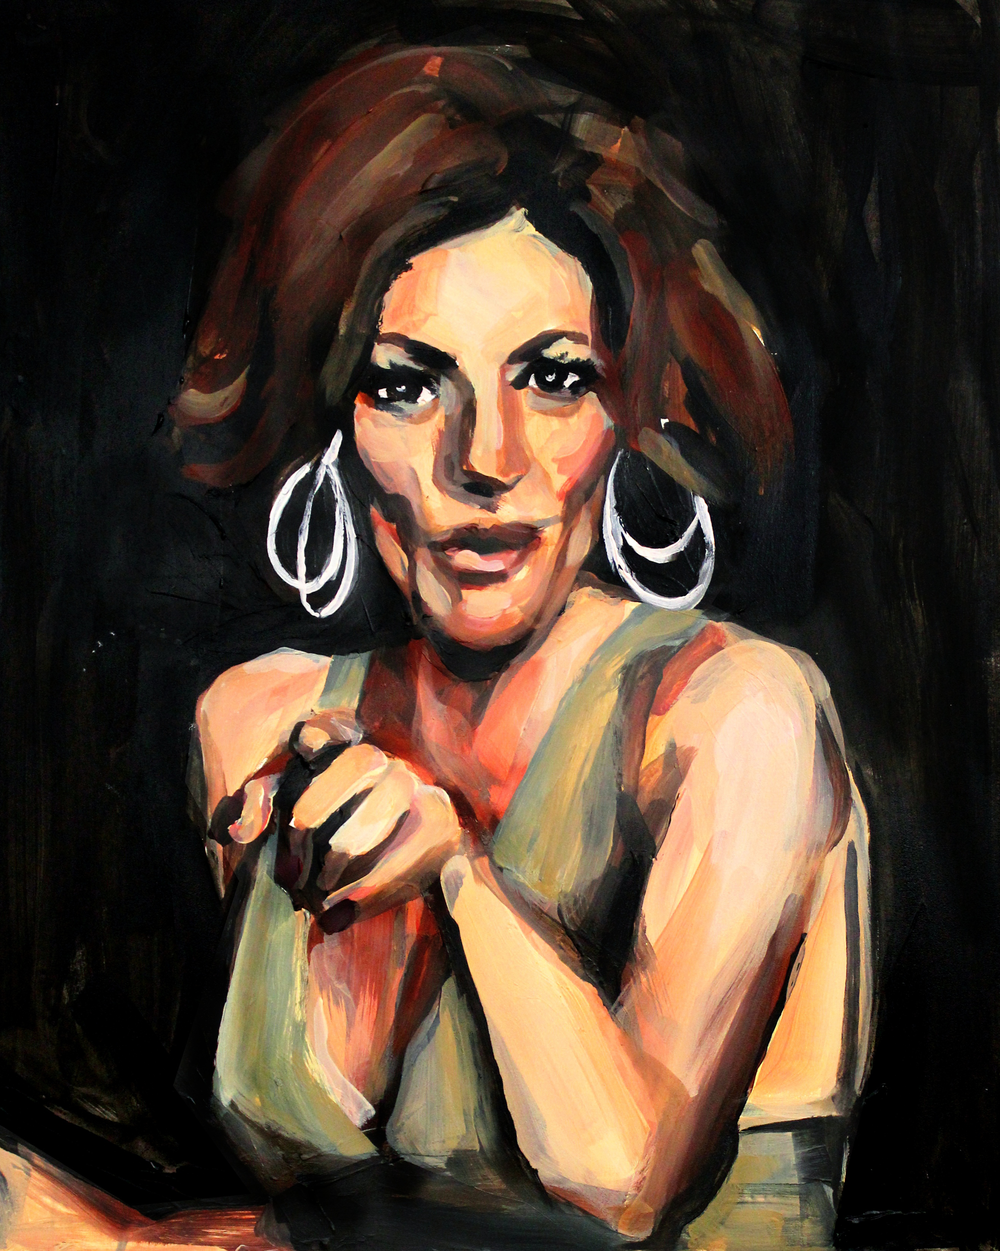 Laura Collins Countess Luann Pointing at You 16x20.png